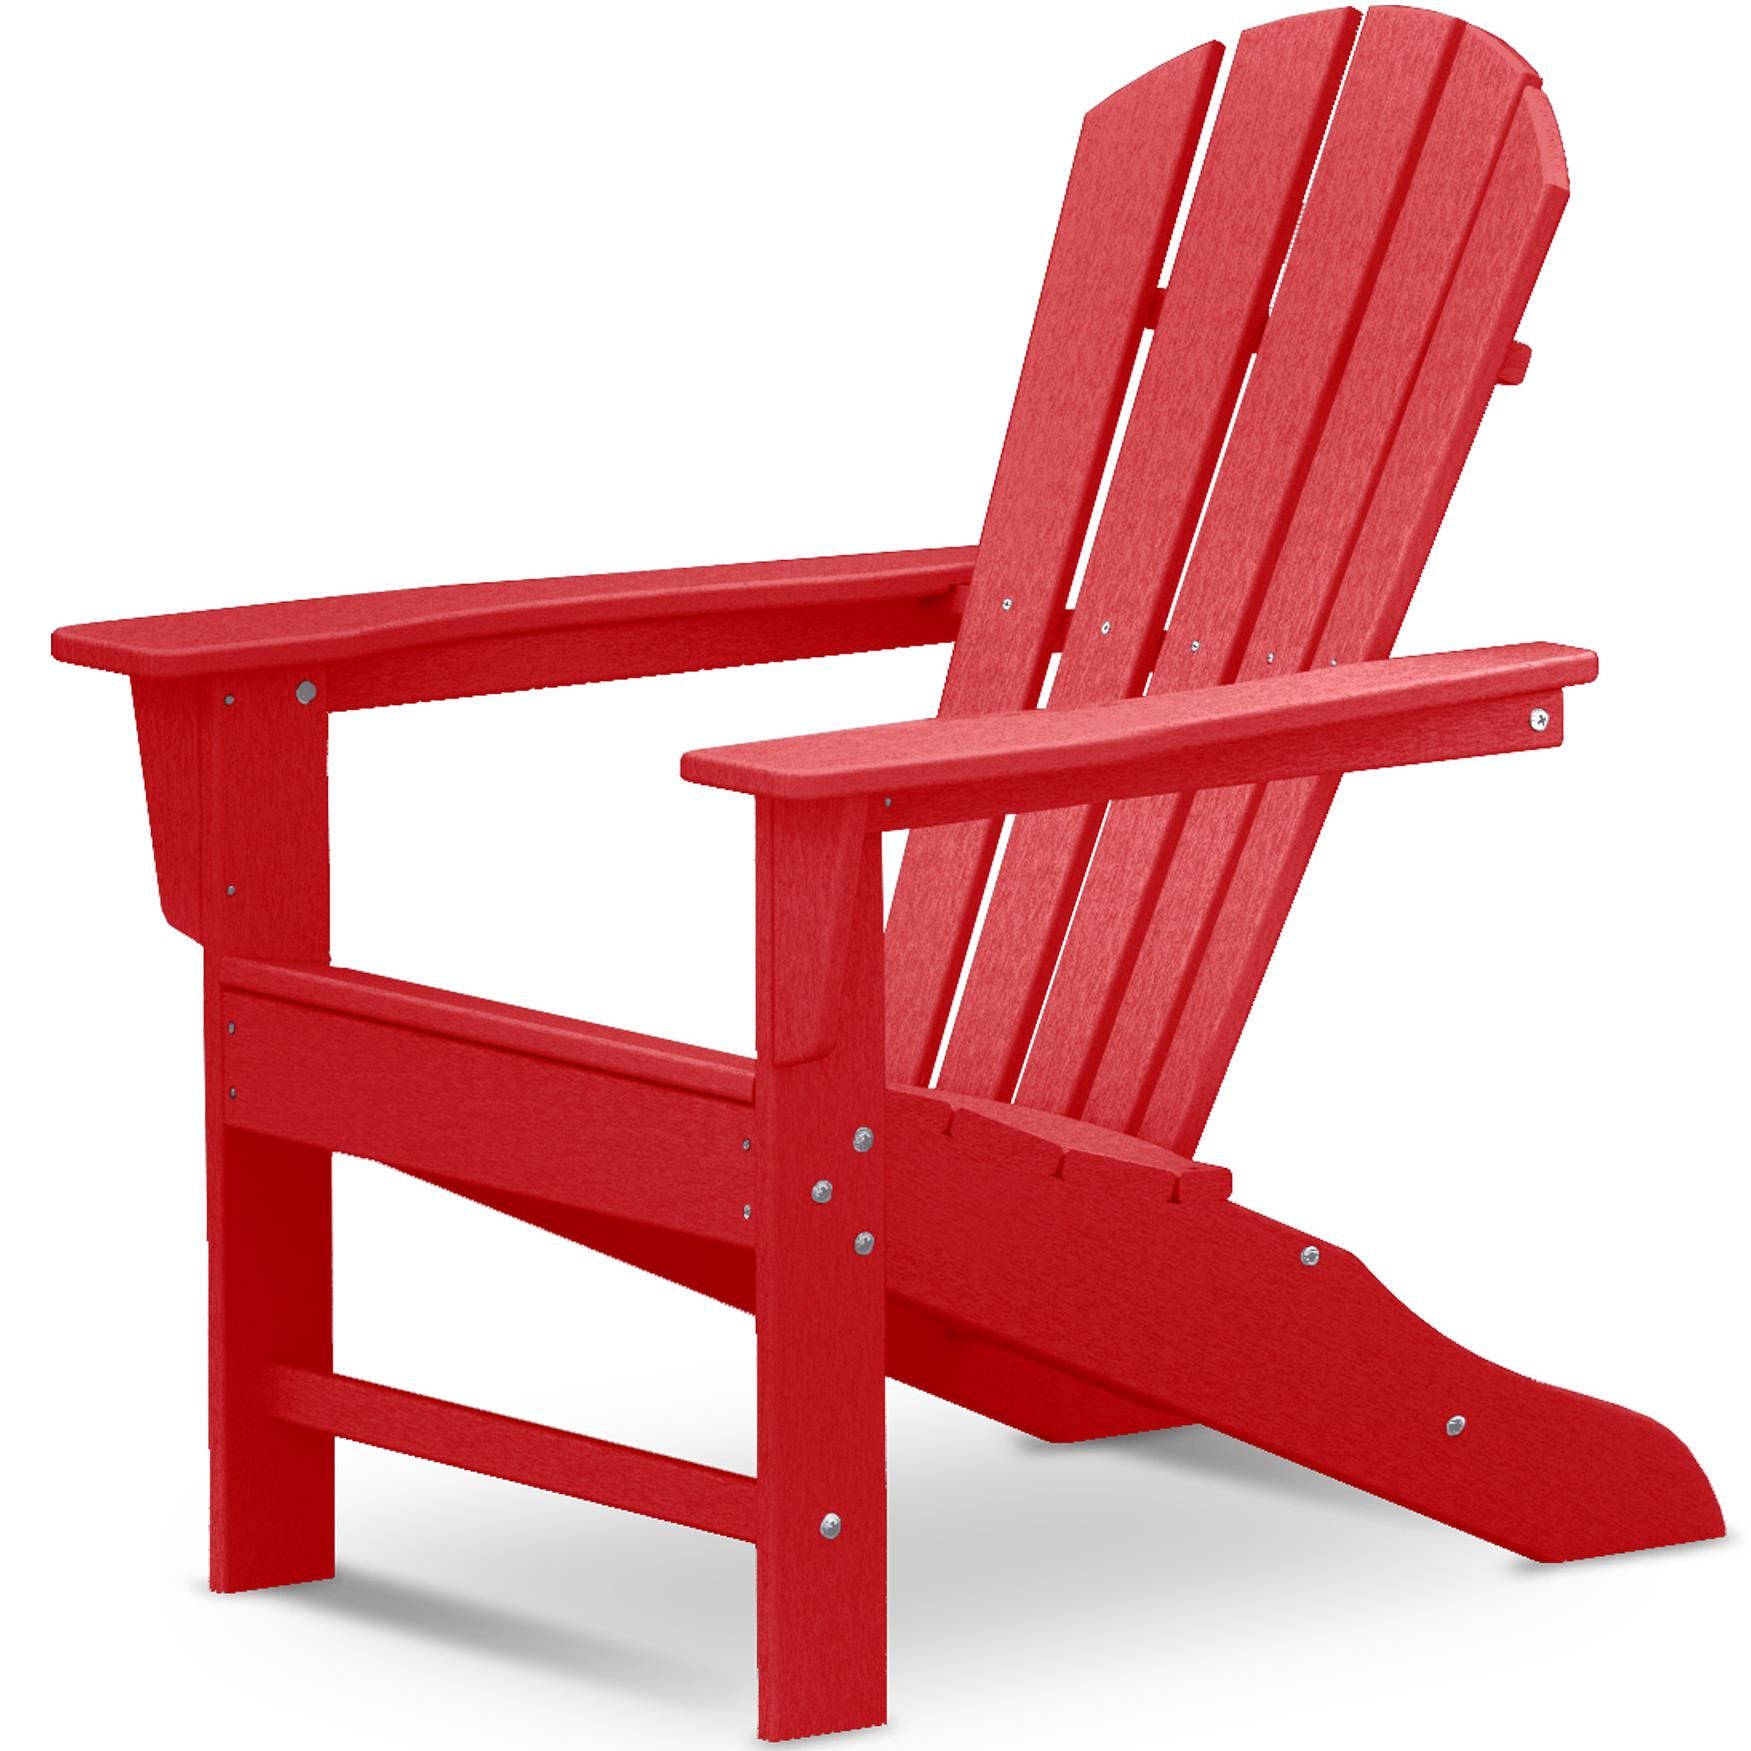 Palm Coast Adirondack Chair by Polywood at Rooms and Rest